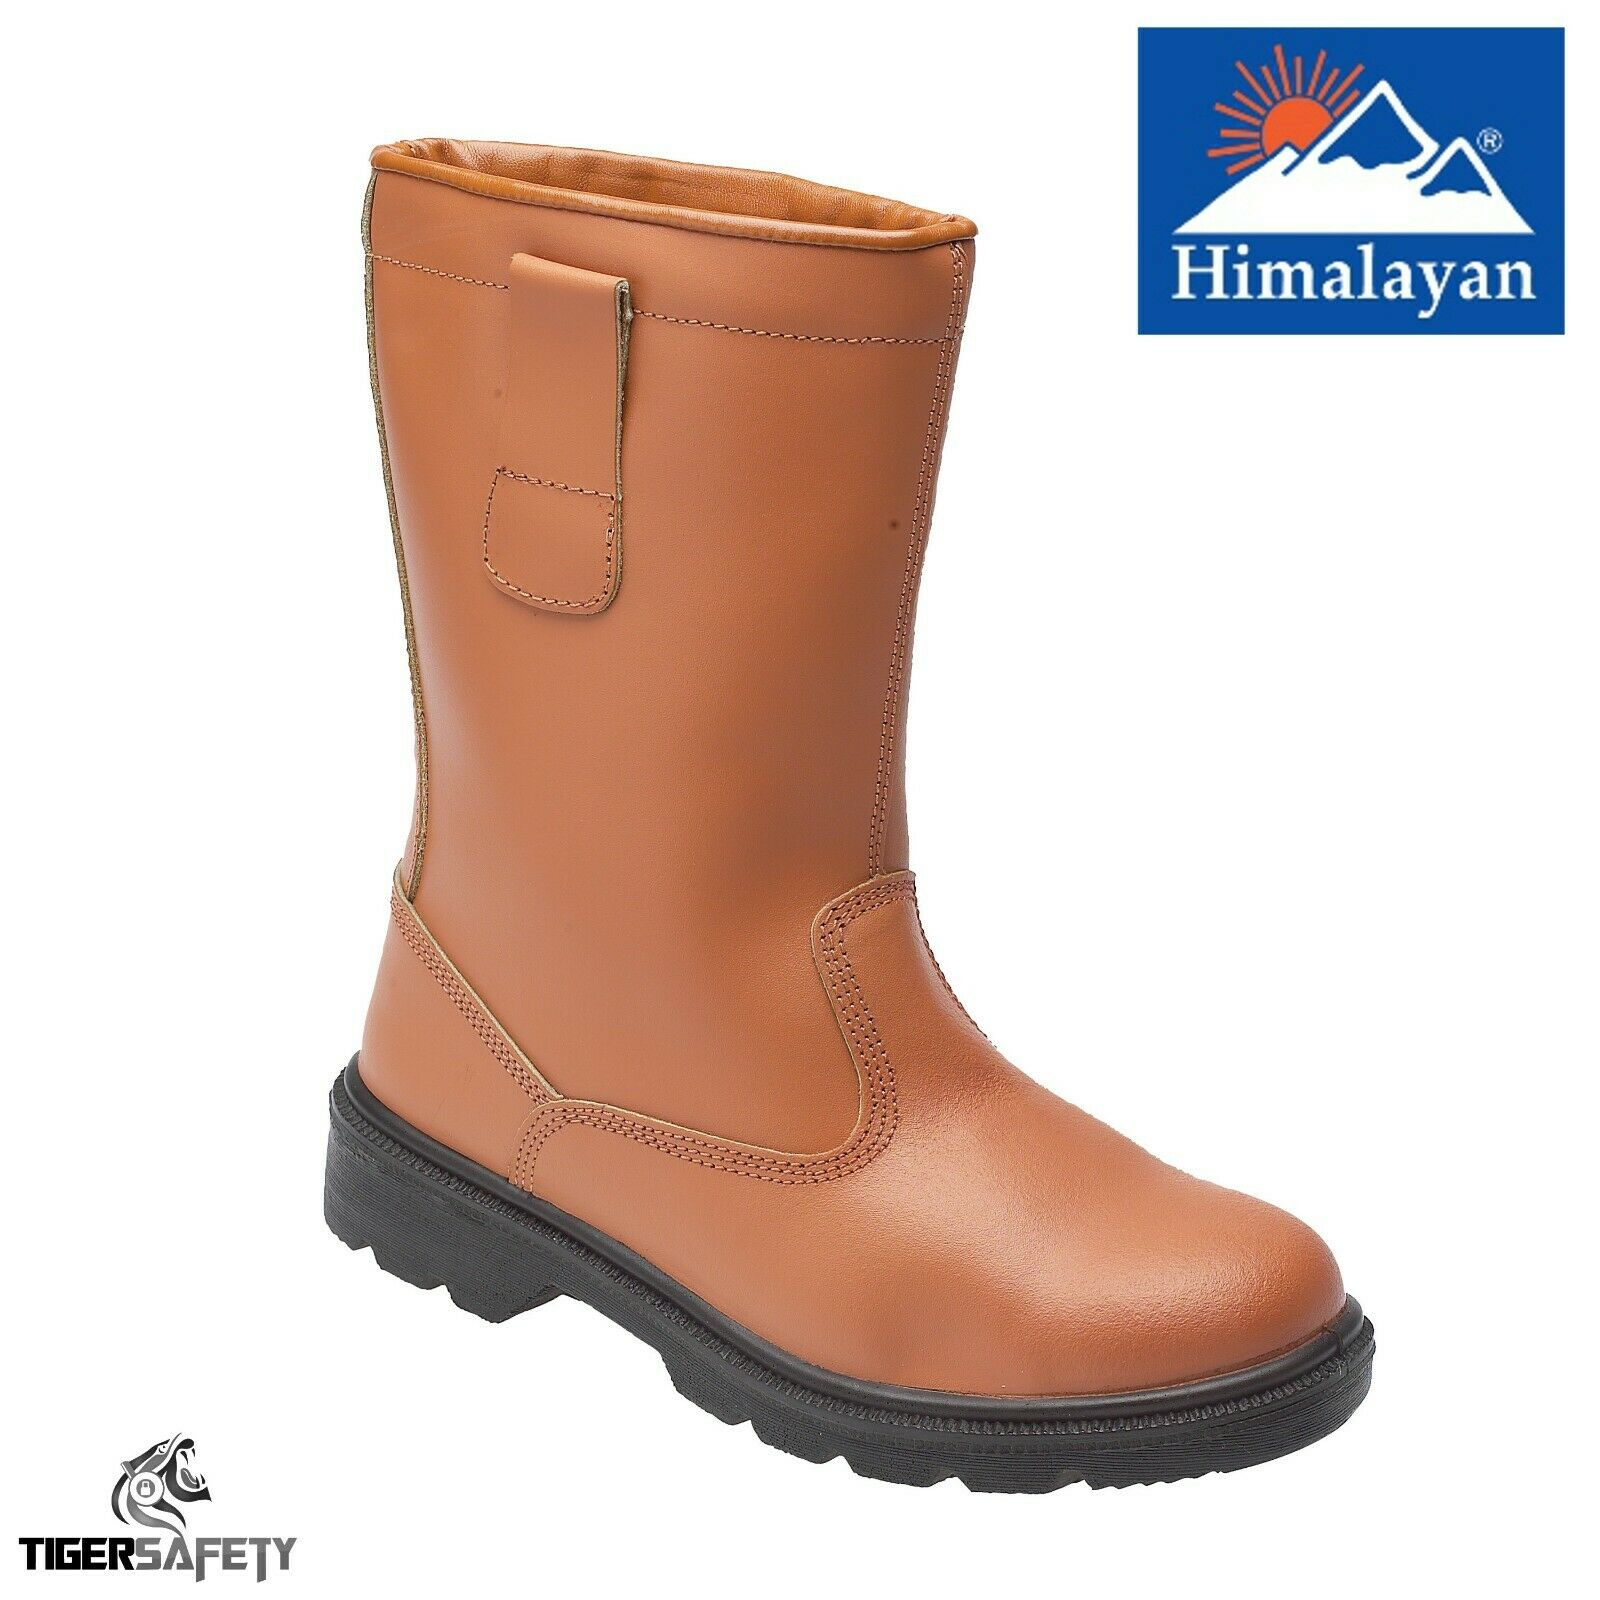 Himalayan 2413 S1P SRC Tan Leather Warm Lined Steel Toe Cap Safety Rigger Boots